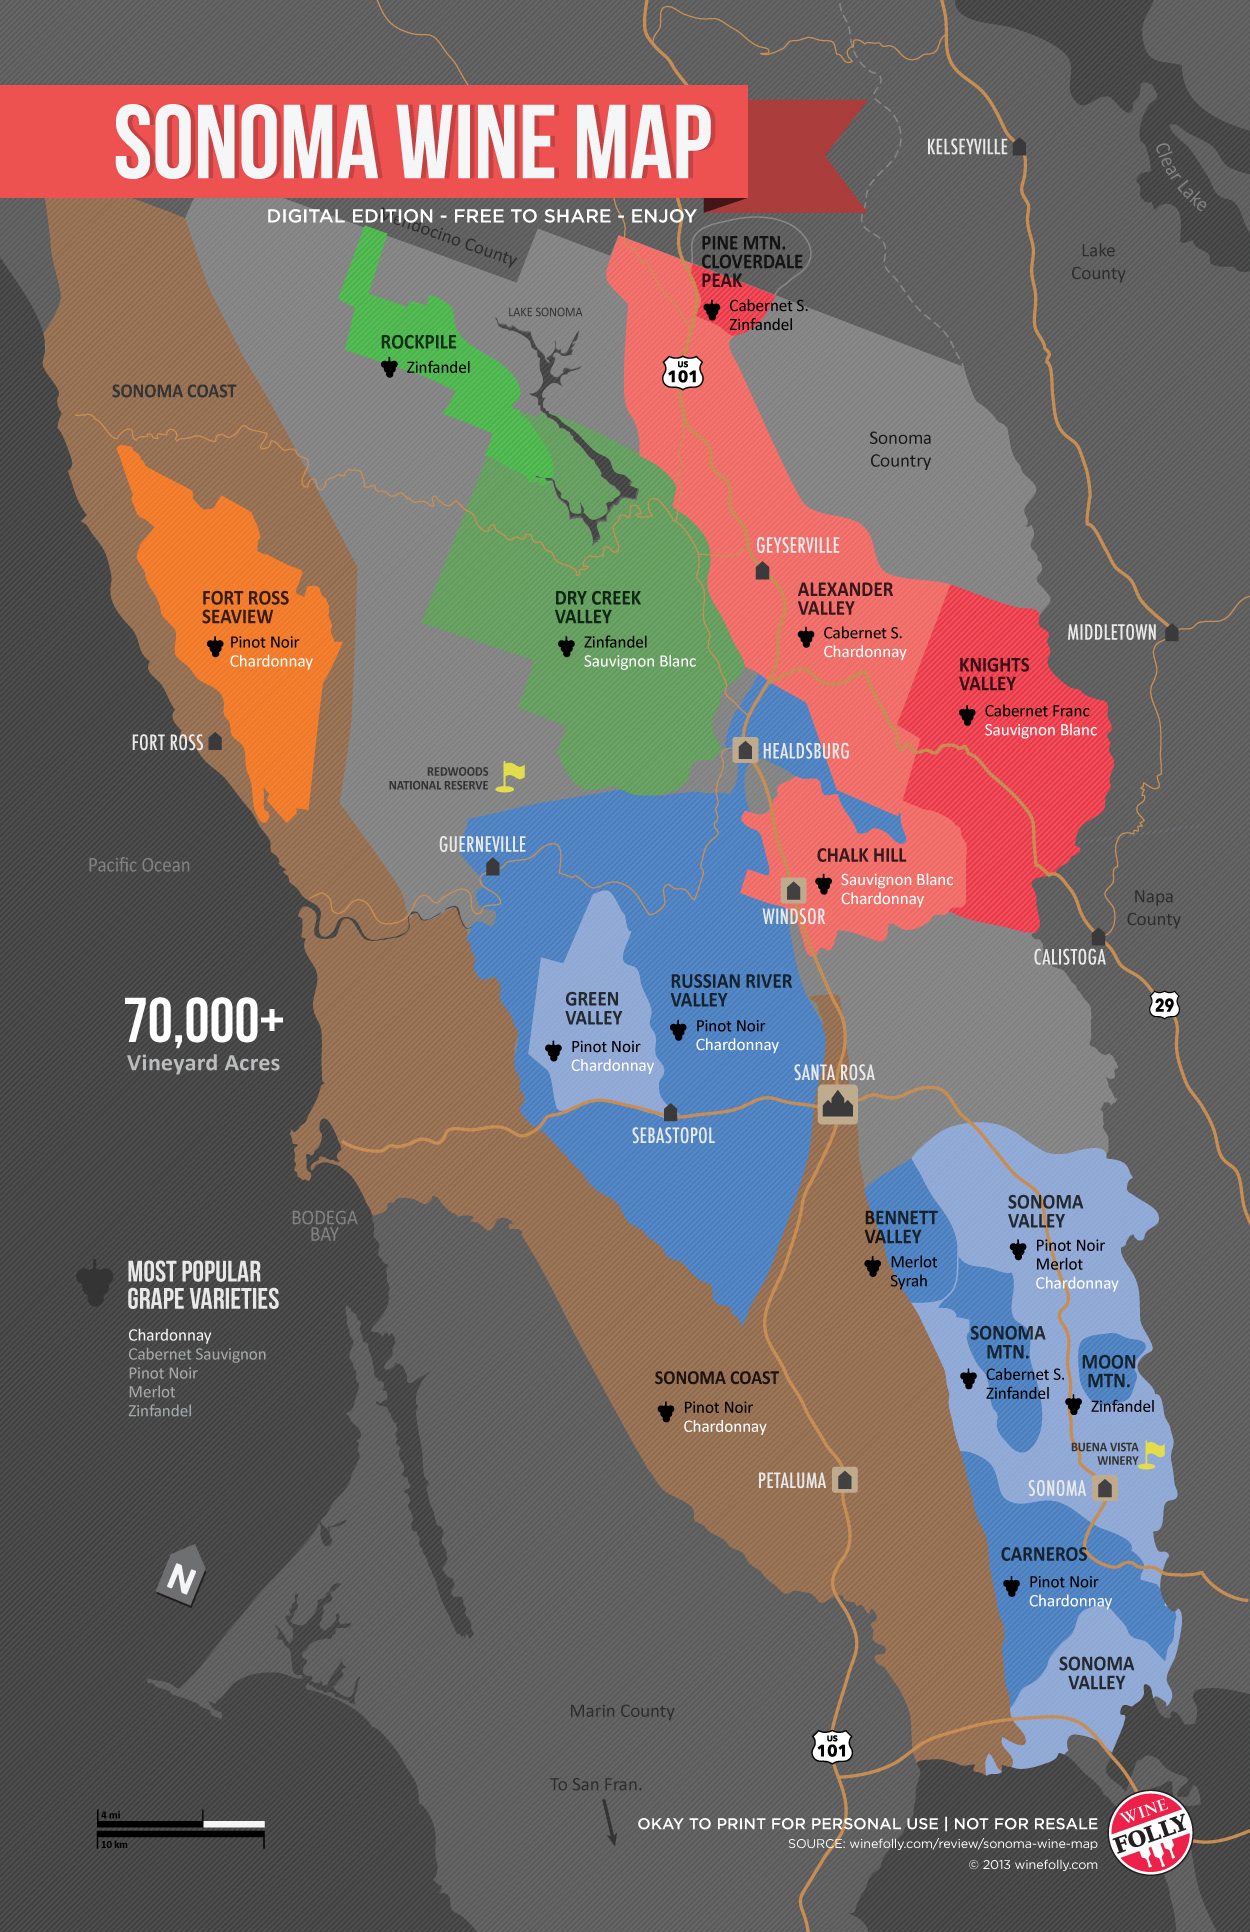 Sonoma Wine Map (Poster) | Wine Folly - Wine Tasting California Map